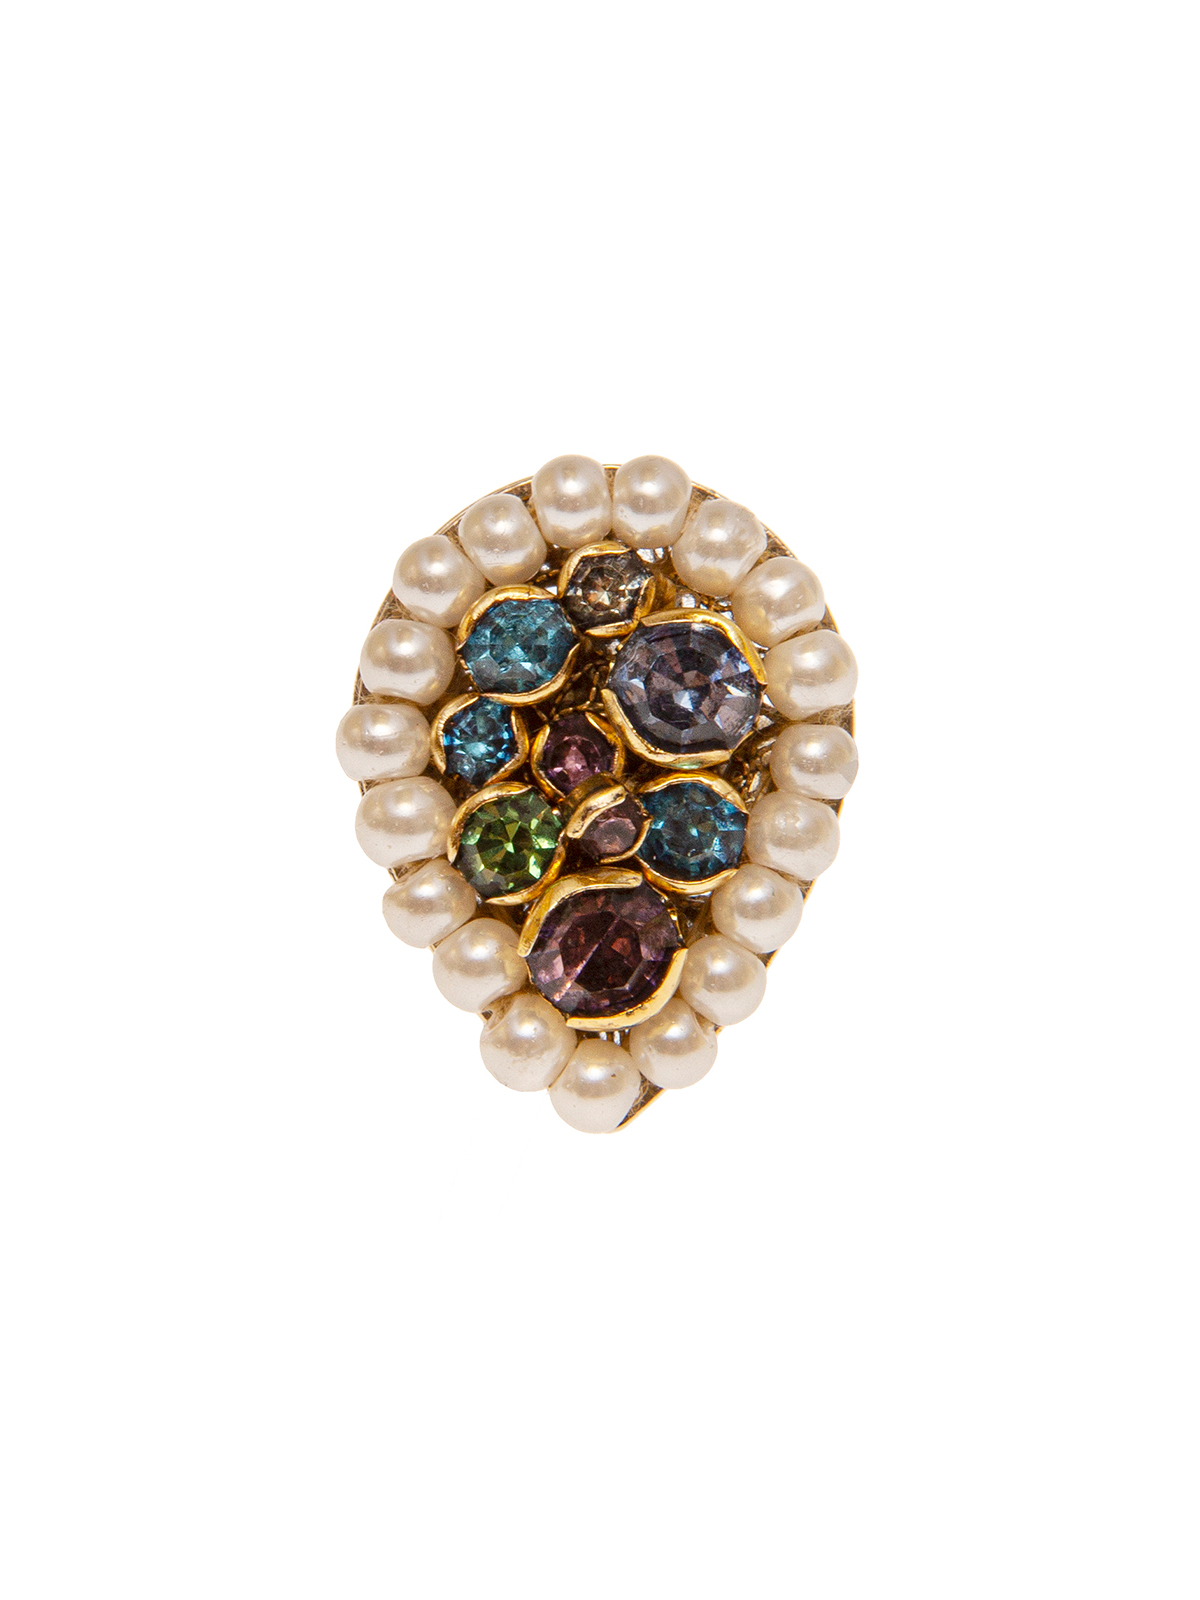 Drop shaped  ring embellished with small pearls and multicolor stones